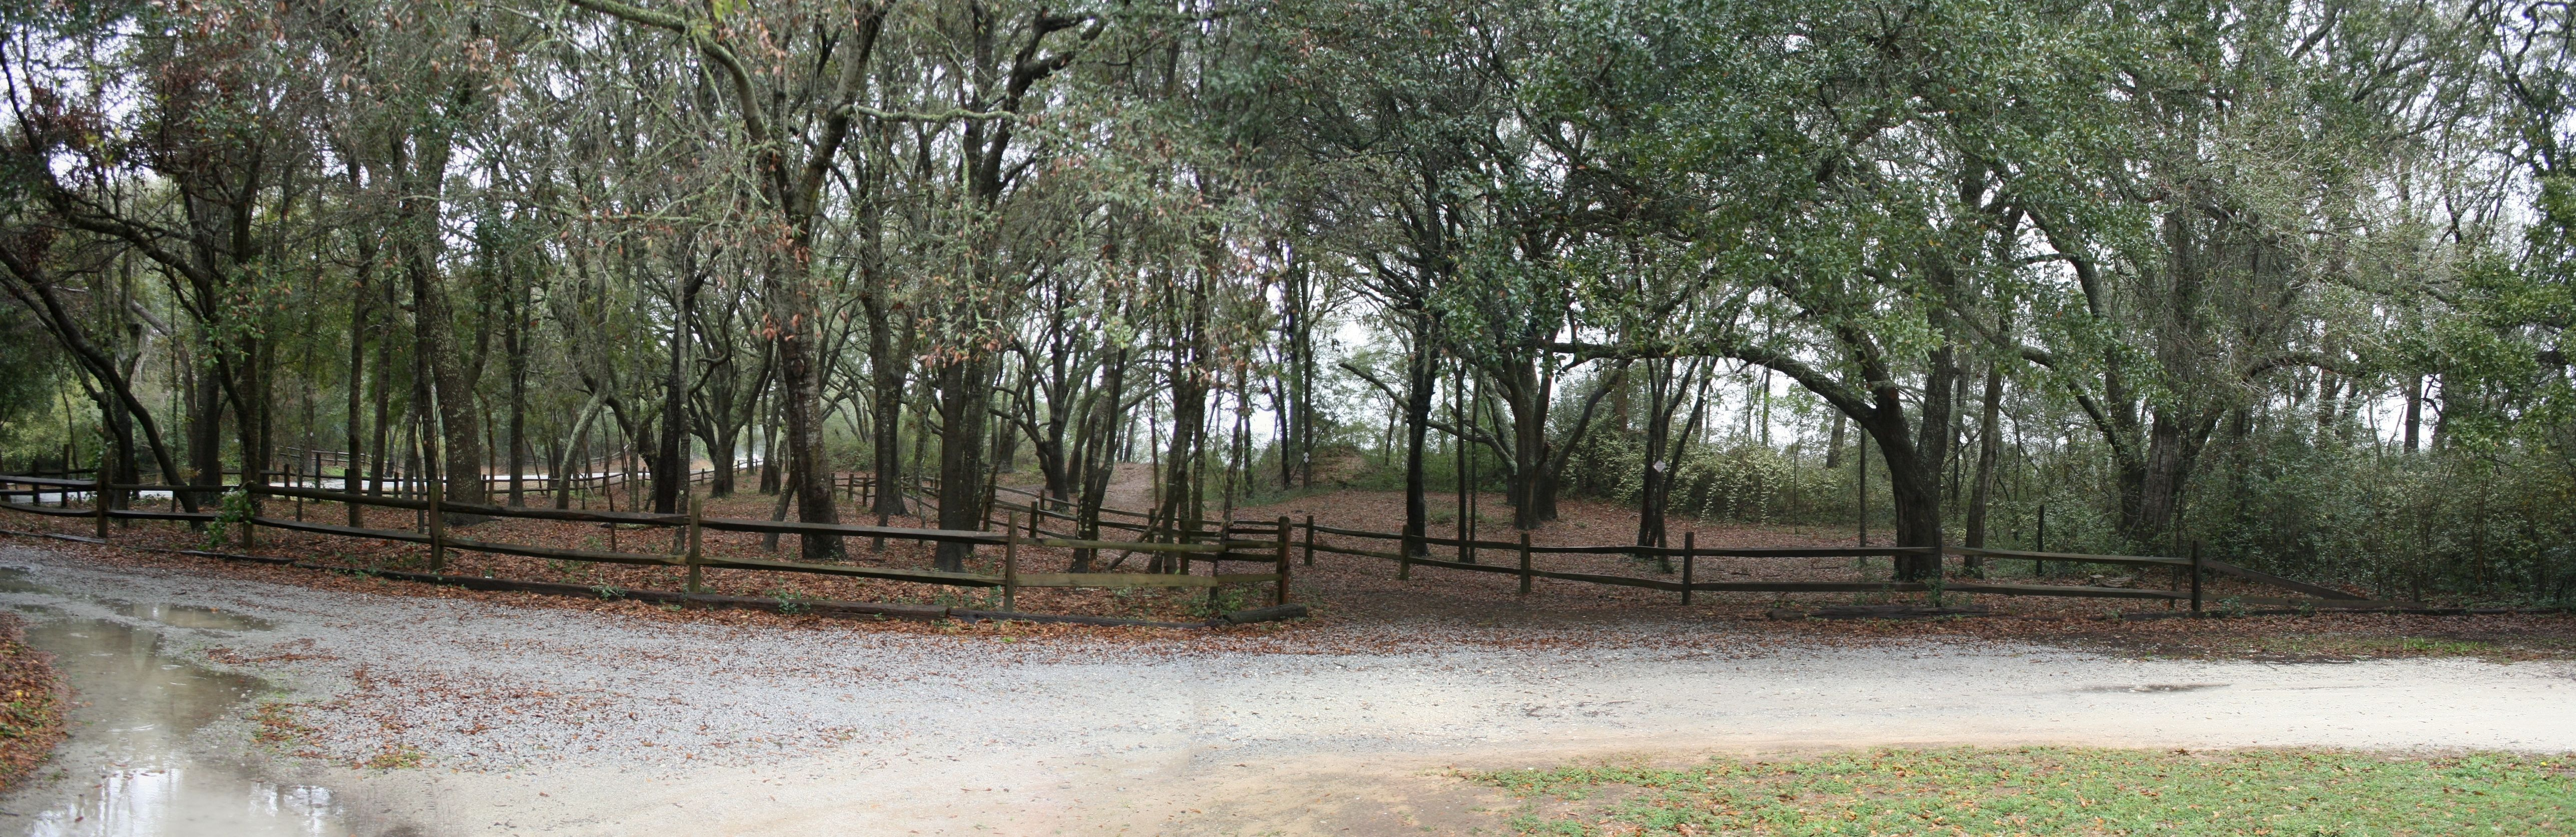 Earthwork Embankment At ACTUAL Site Of Ft. Lamar/Battle Of Secessionville,  James Island